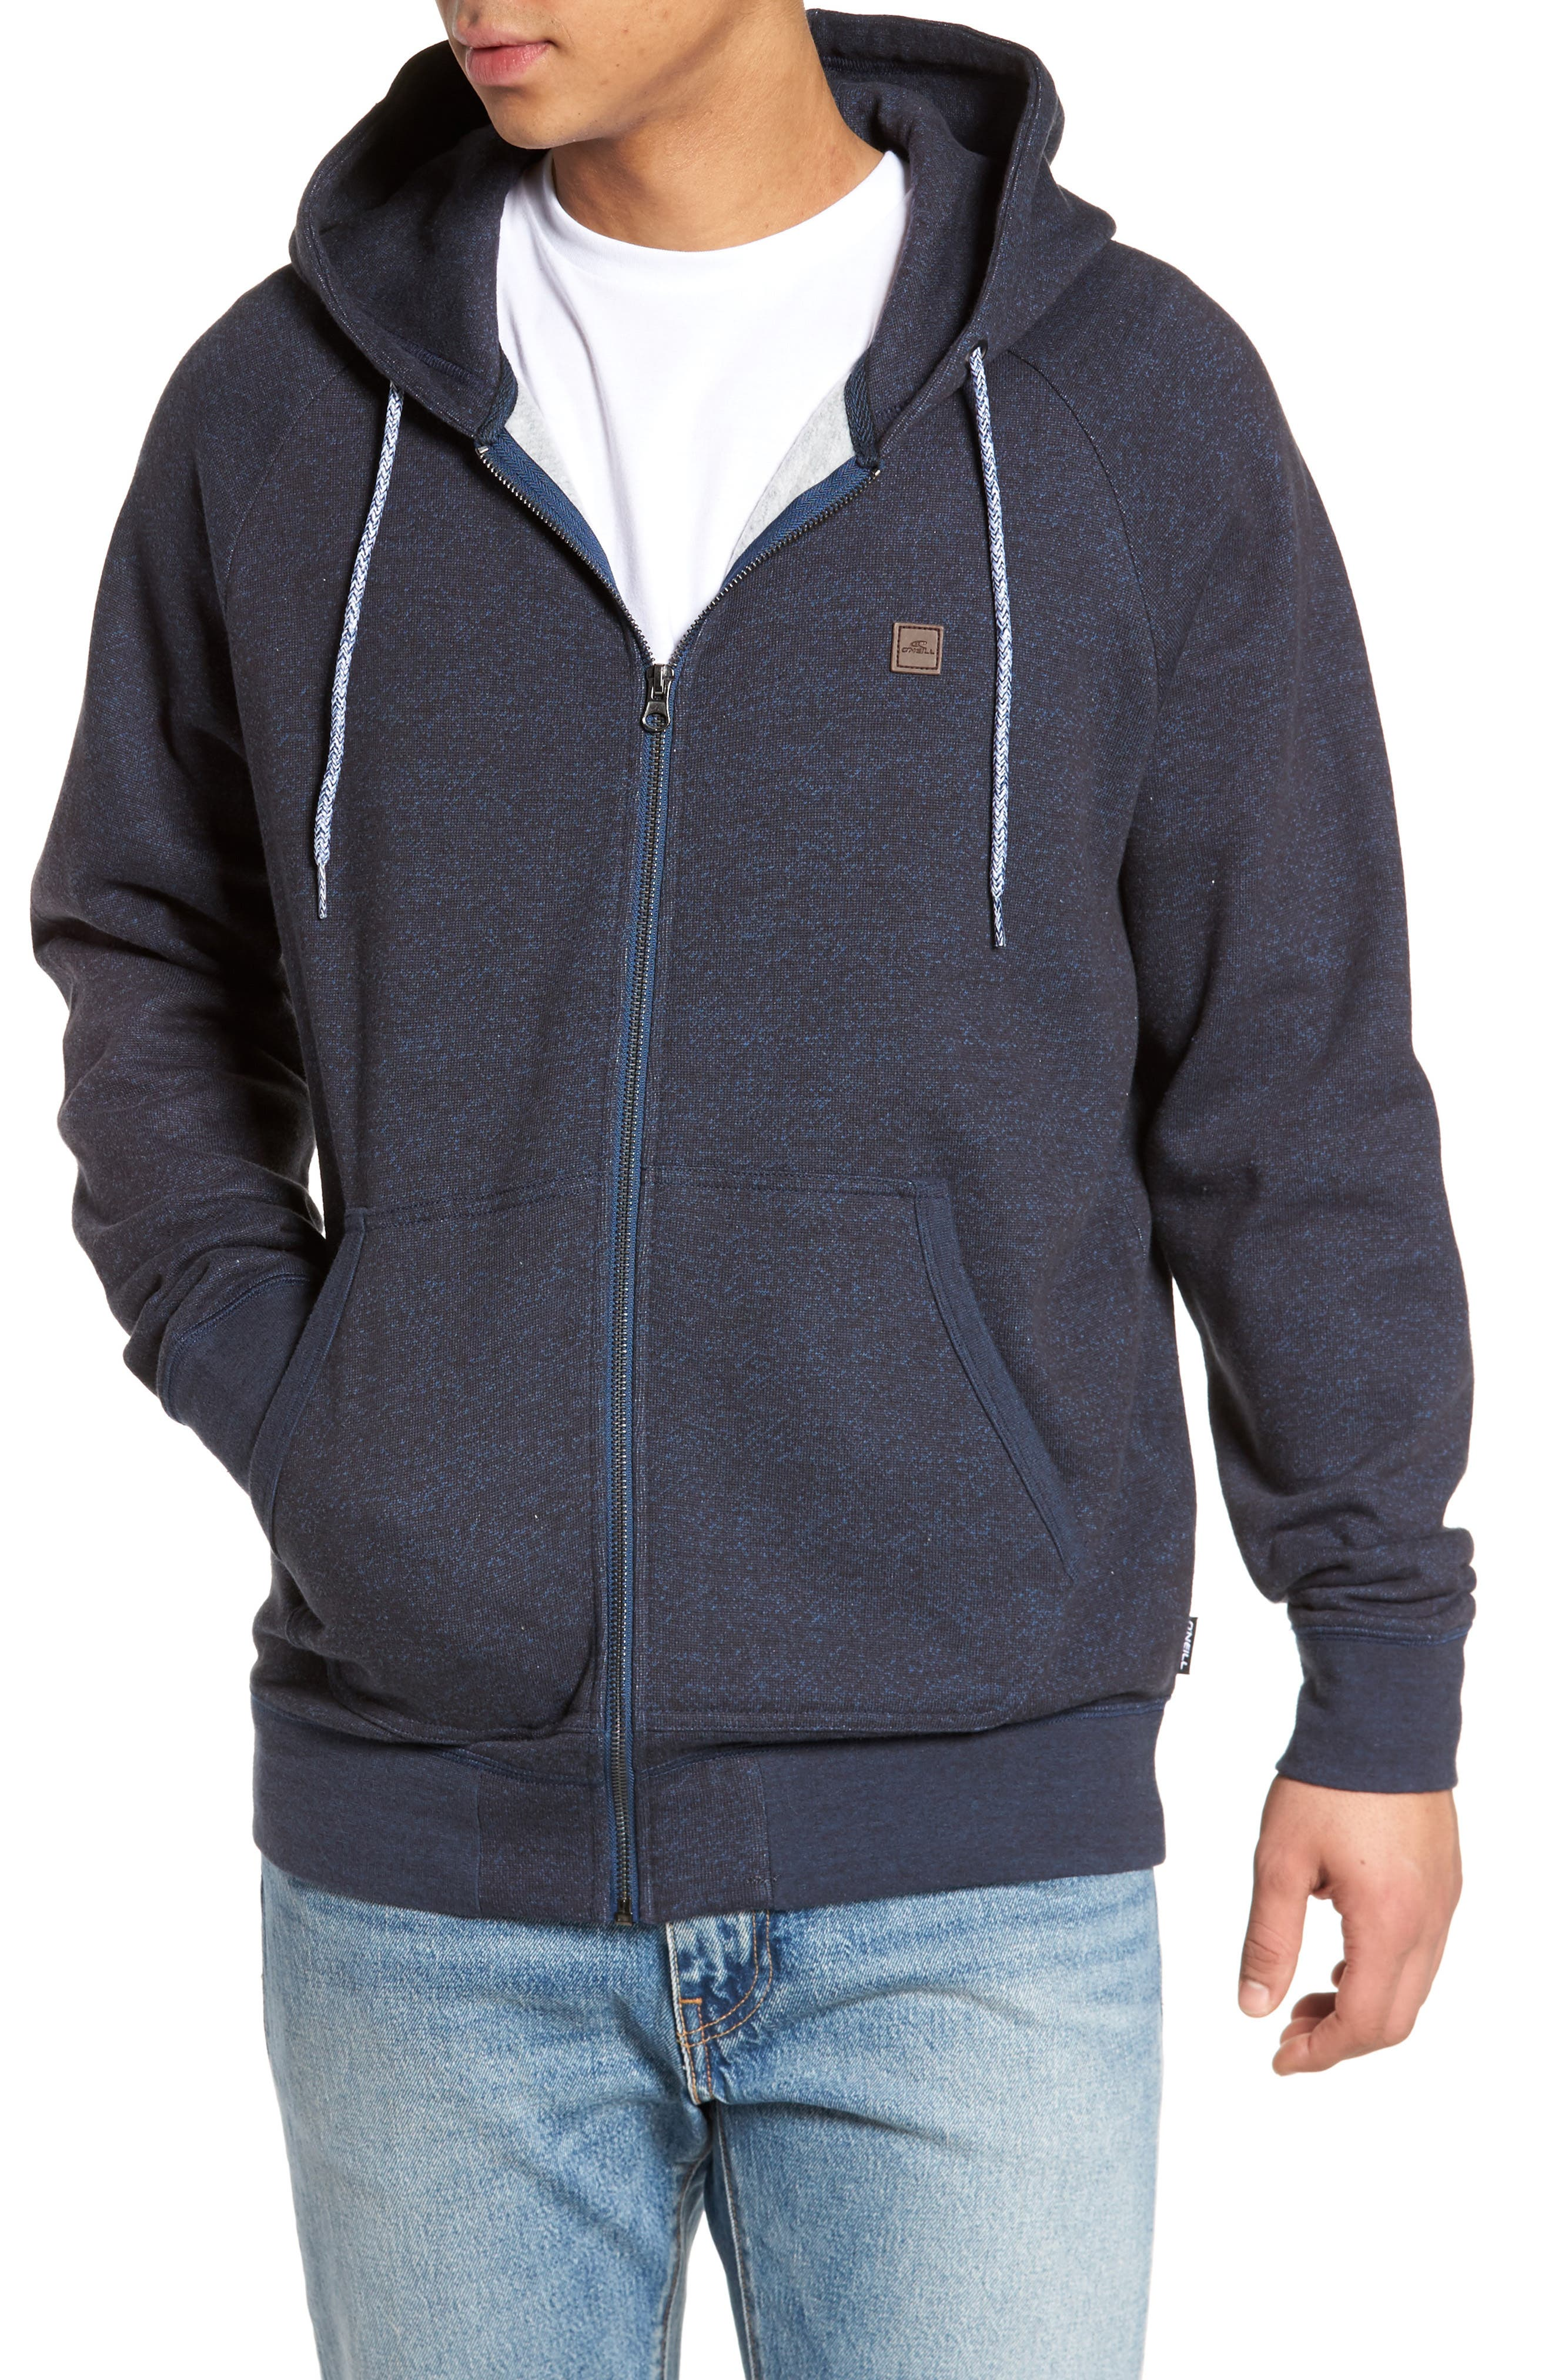 Alternate Image 1 Selected - O'Neill The Standard Zip Hoodie